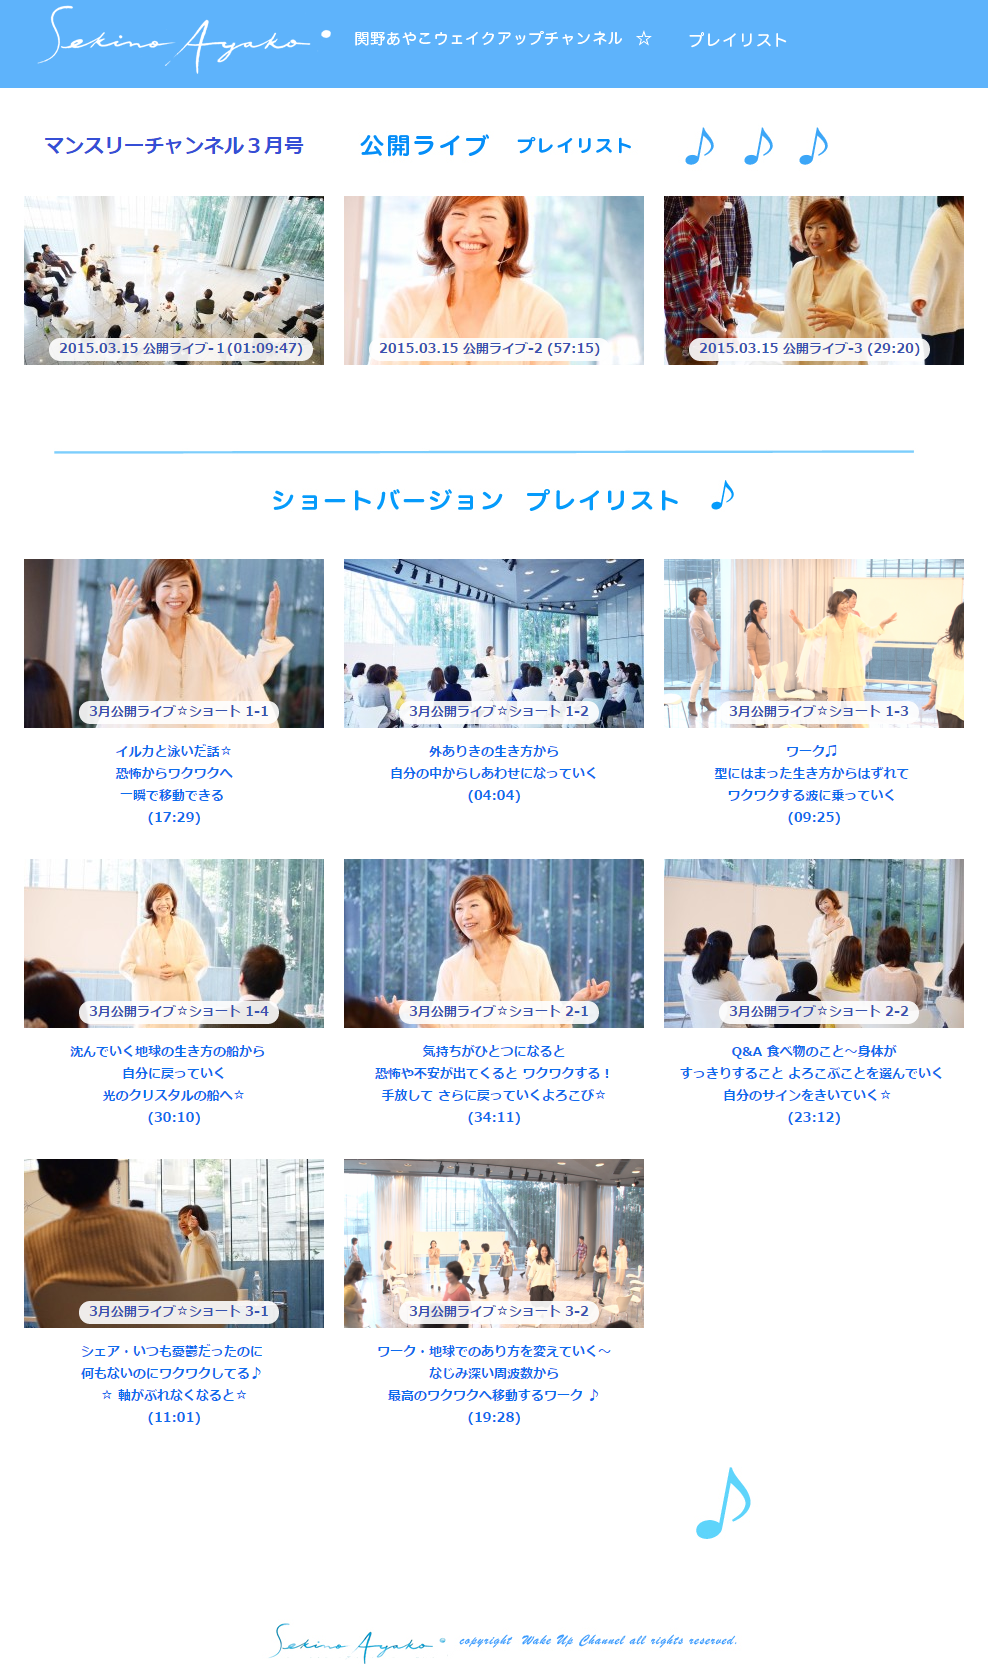 screencapture-sekinoayako-com-playlist-monthly-2015-03v5gay